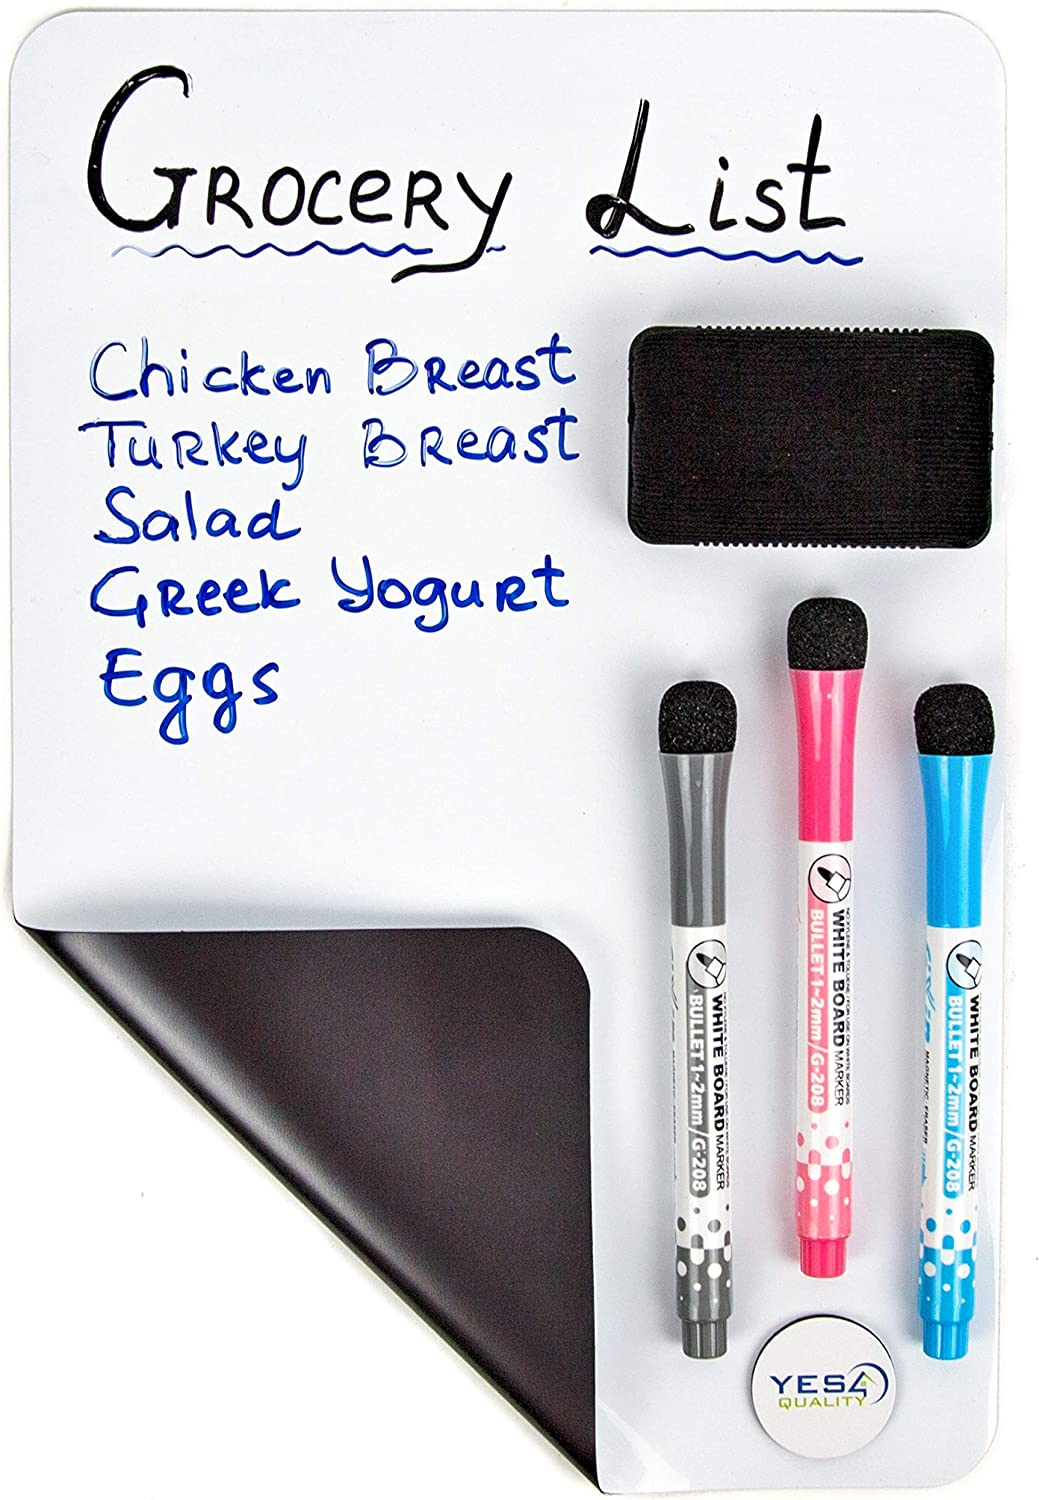 Magnetic Dry Erase White Board Sheet for Fridge 12x8 in - with Stain Resistant Technology - Includes 3 Markers and Big Eraser with Magnets - Small Refrigerator Whiteboard Planner & Organizer